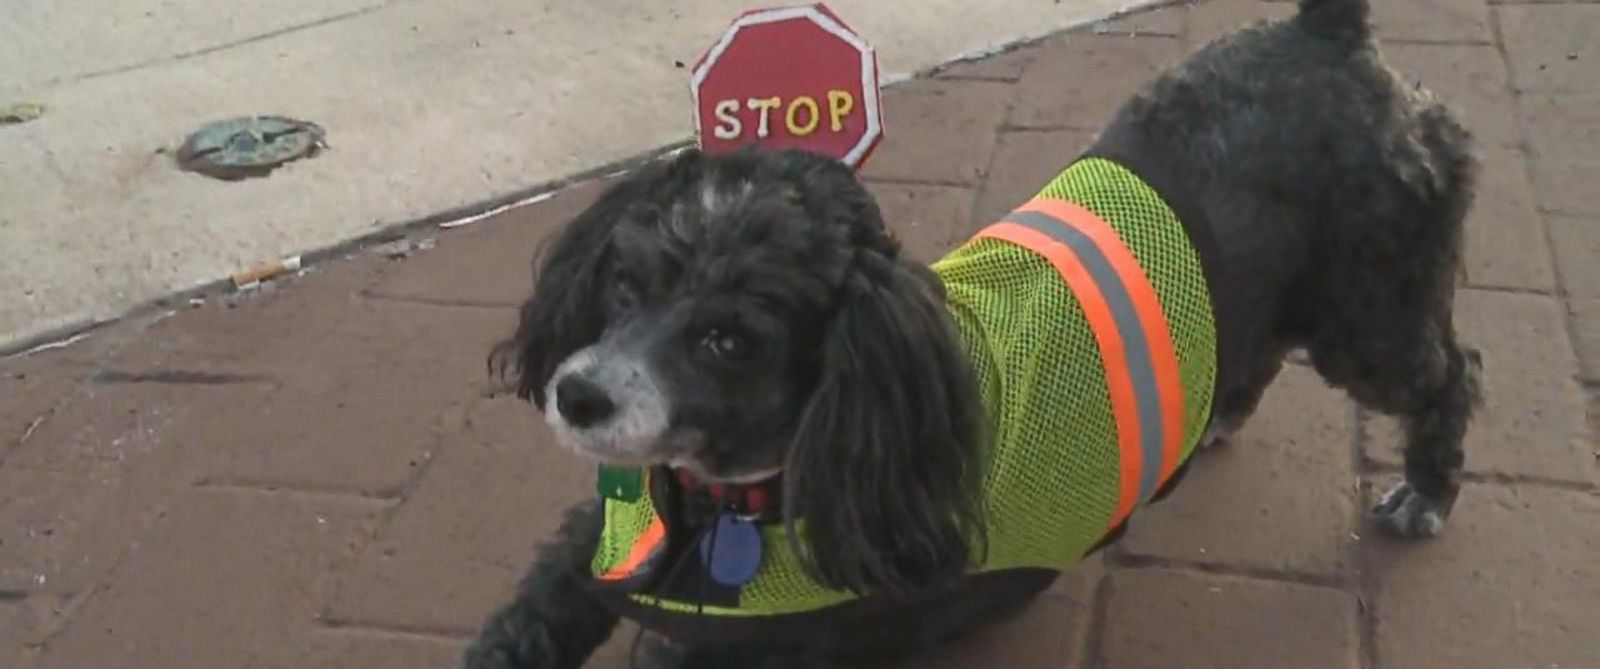 Dog Vest Patches Photo Patches The Dog Wears a